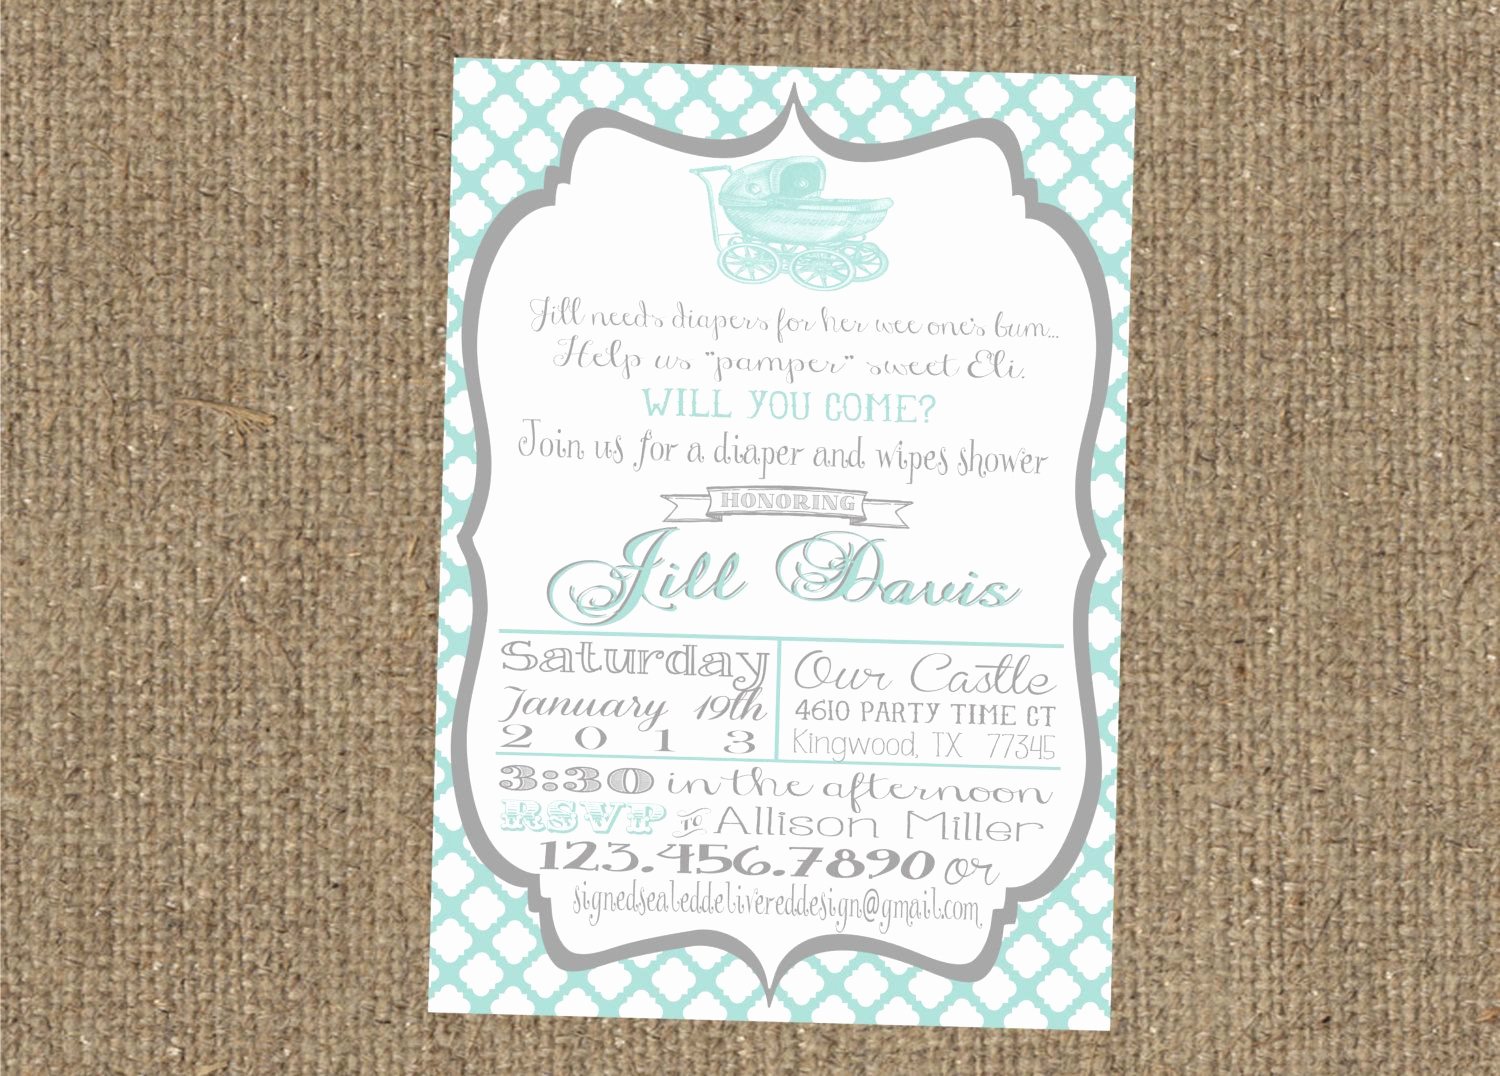 Diapers and Wipes Shower Invitation Elegant Diapers and Wipes Shower Invitation